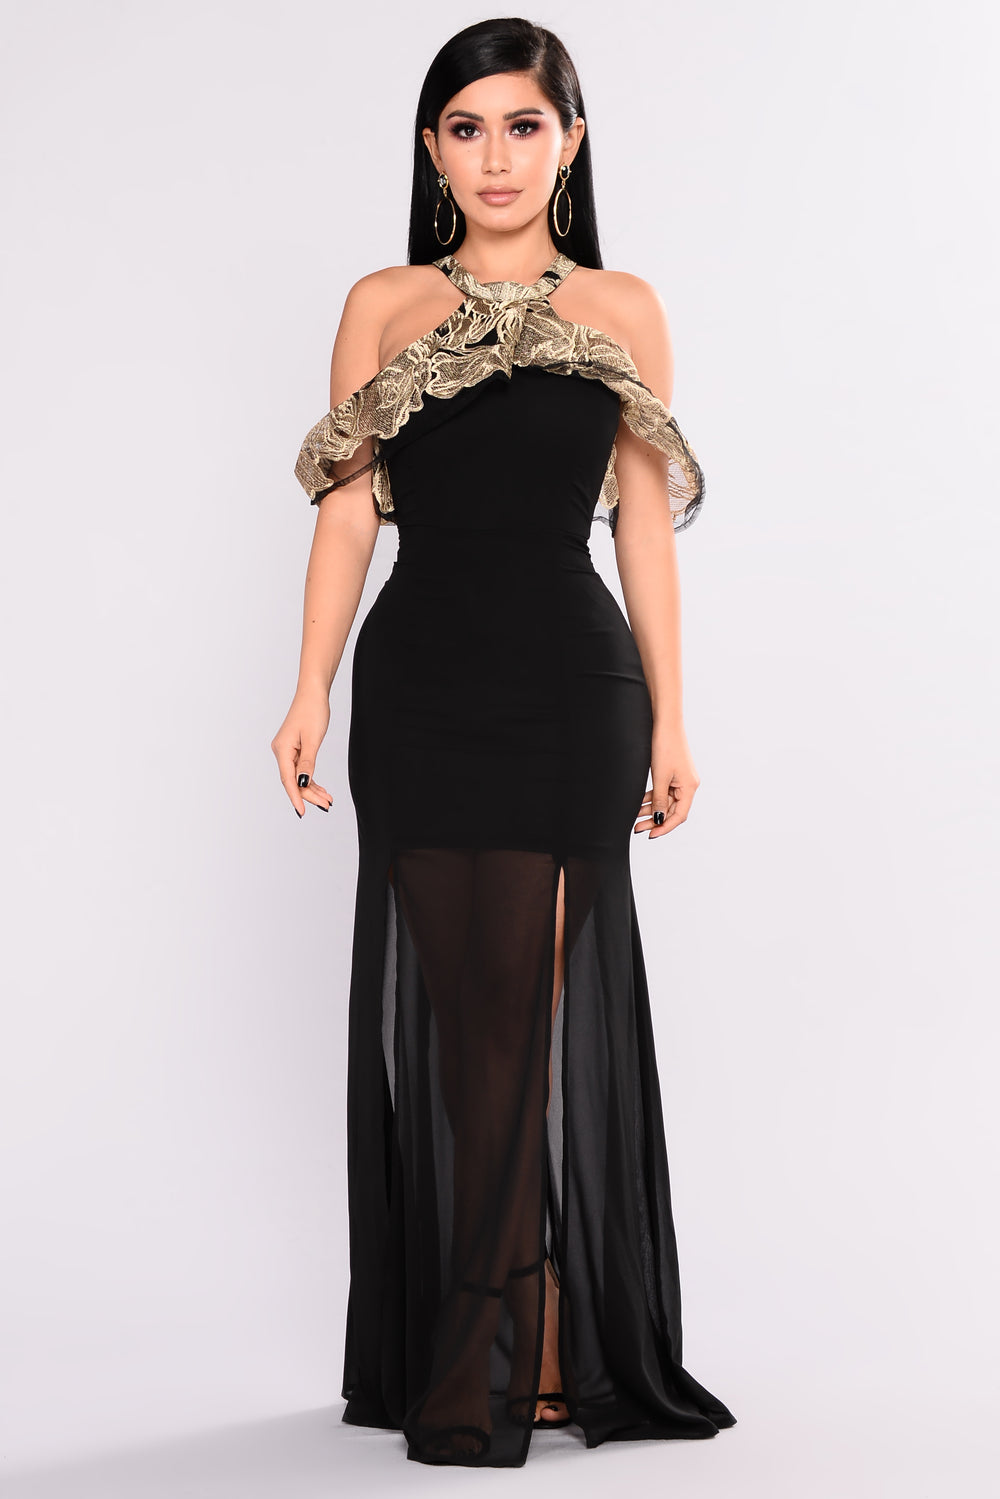 Queenship Embroidered Dress - Black/Gold